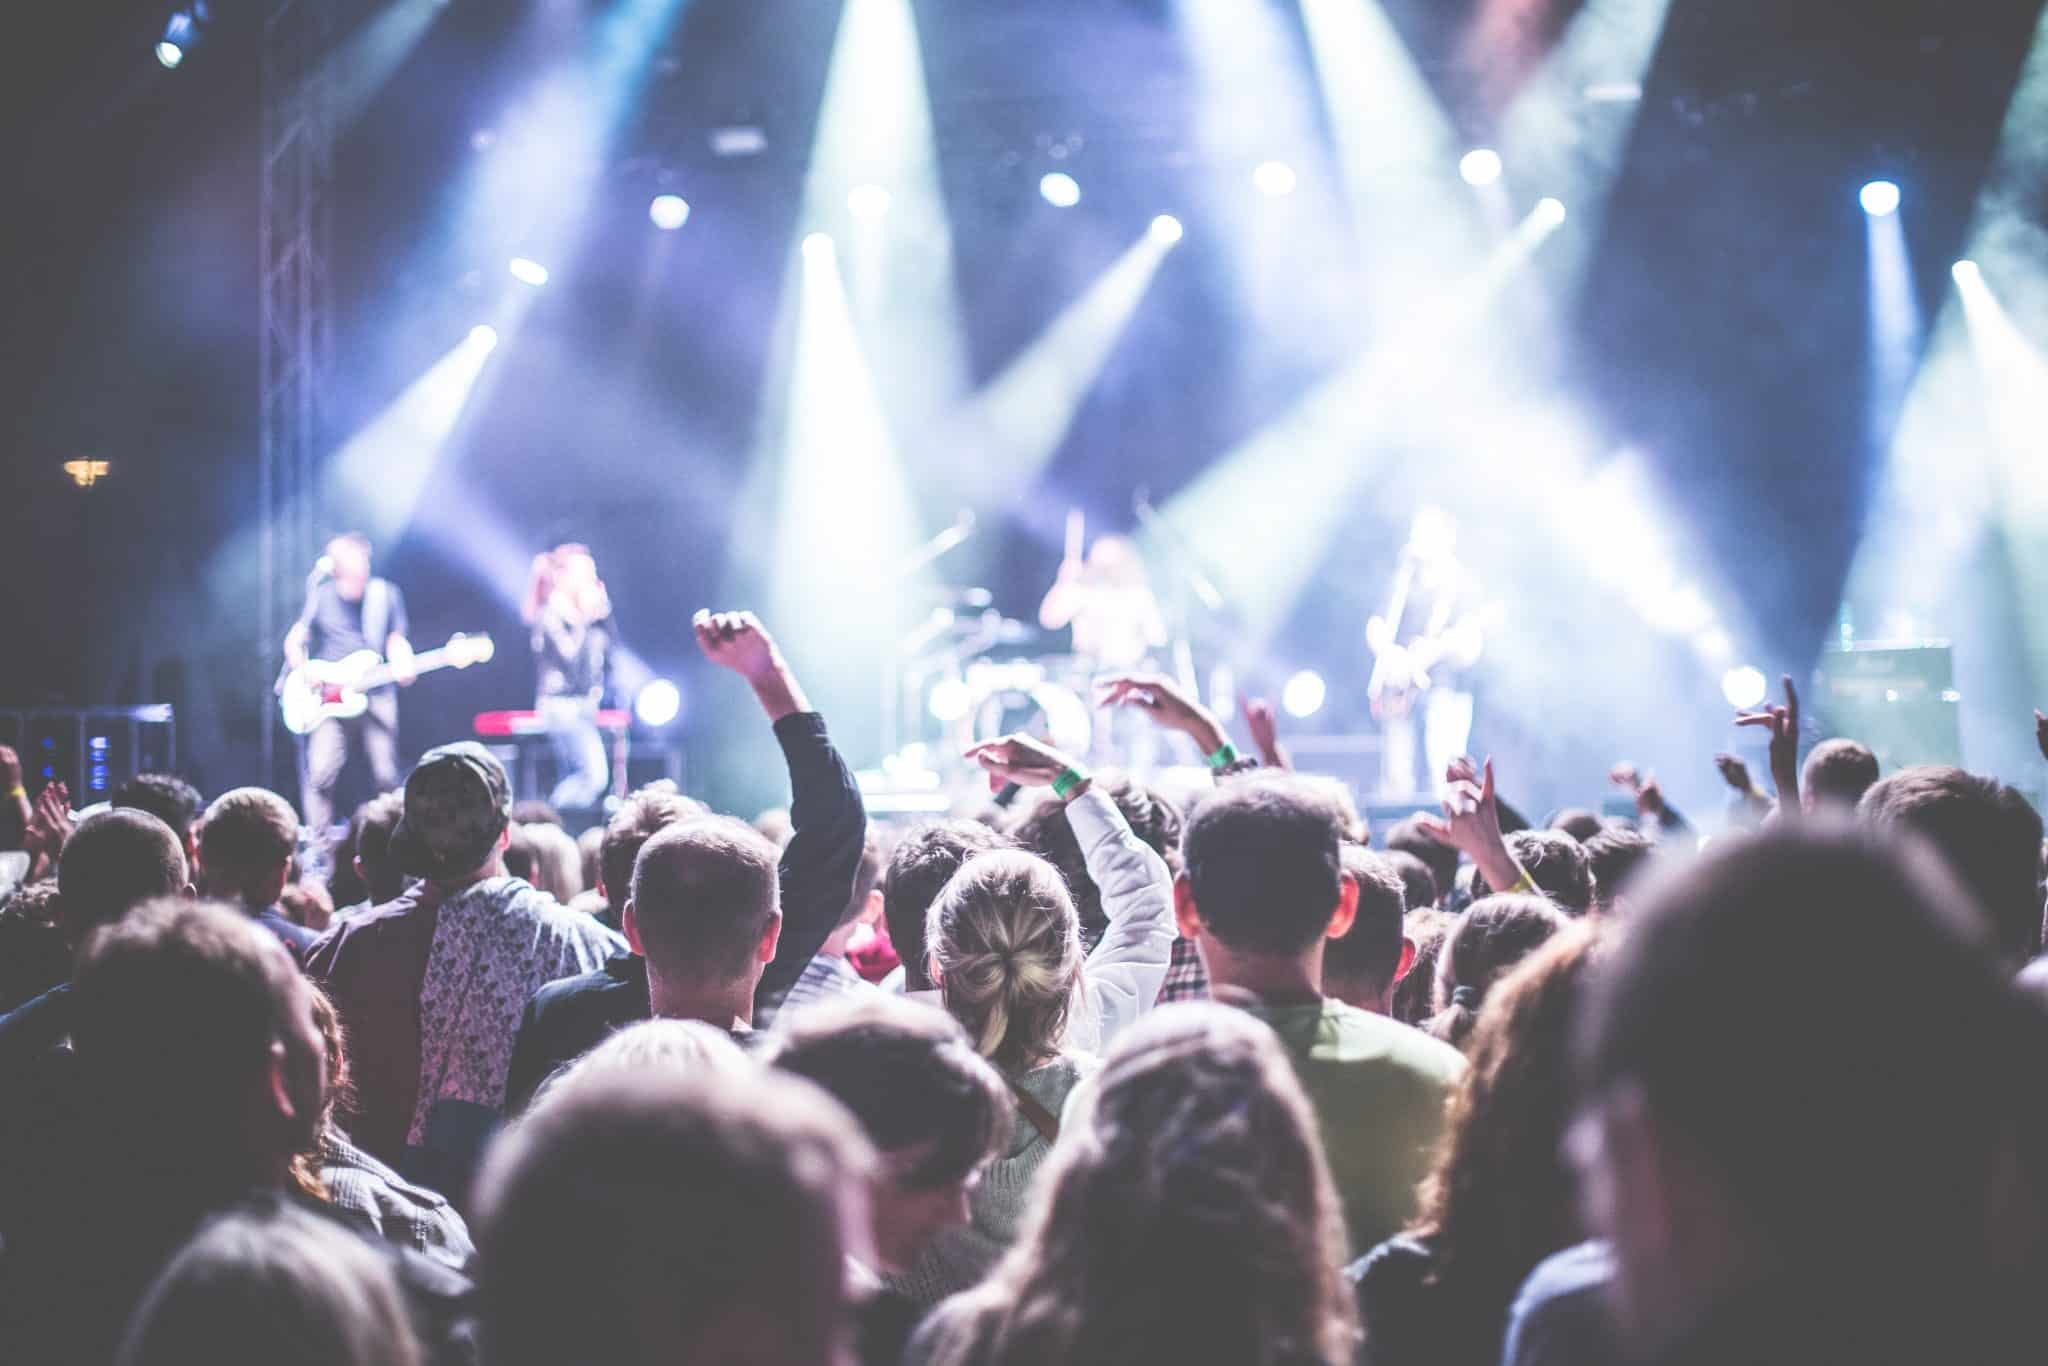 How to Promote Your Advocacy as an Indie Artist